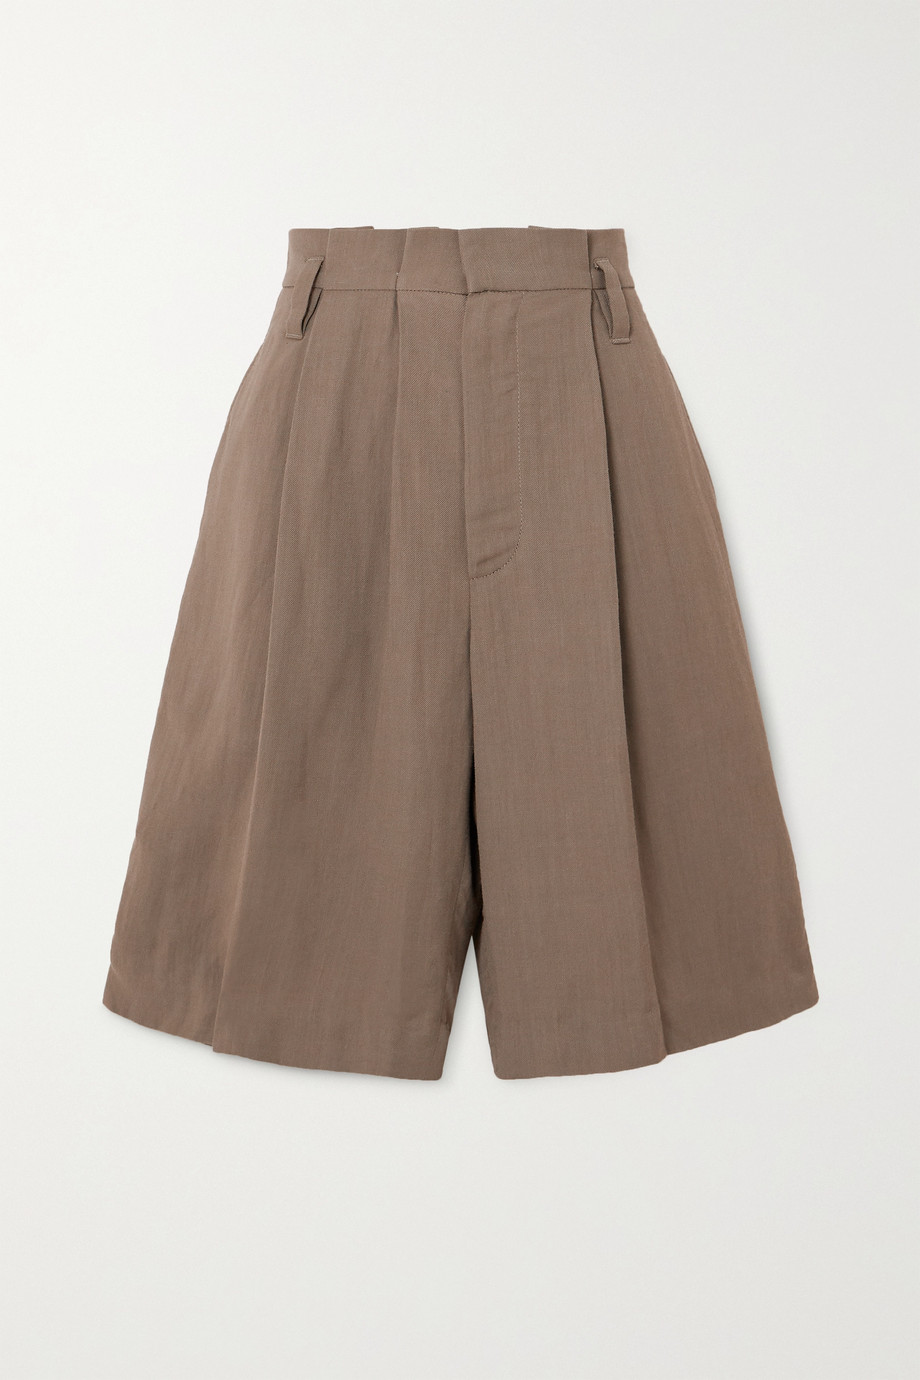 Brunello Cucinelli + Space for Giants pleated twill shorts